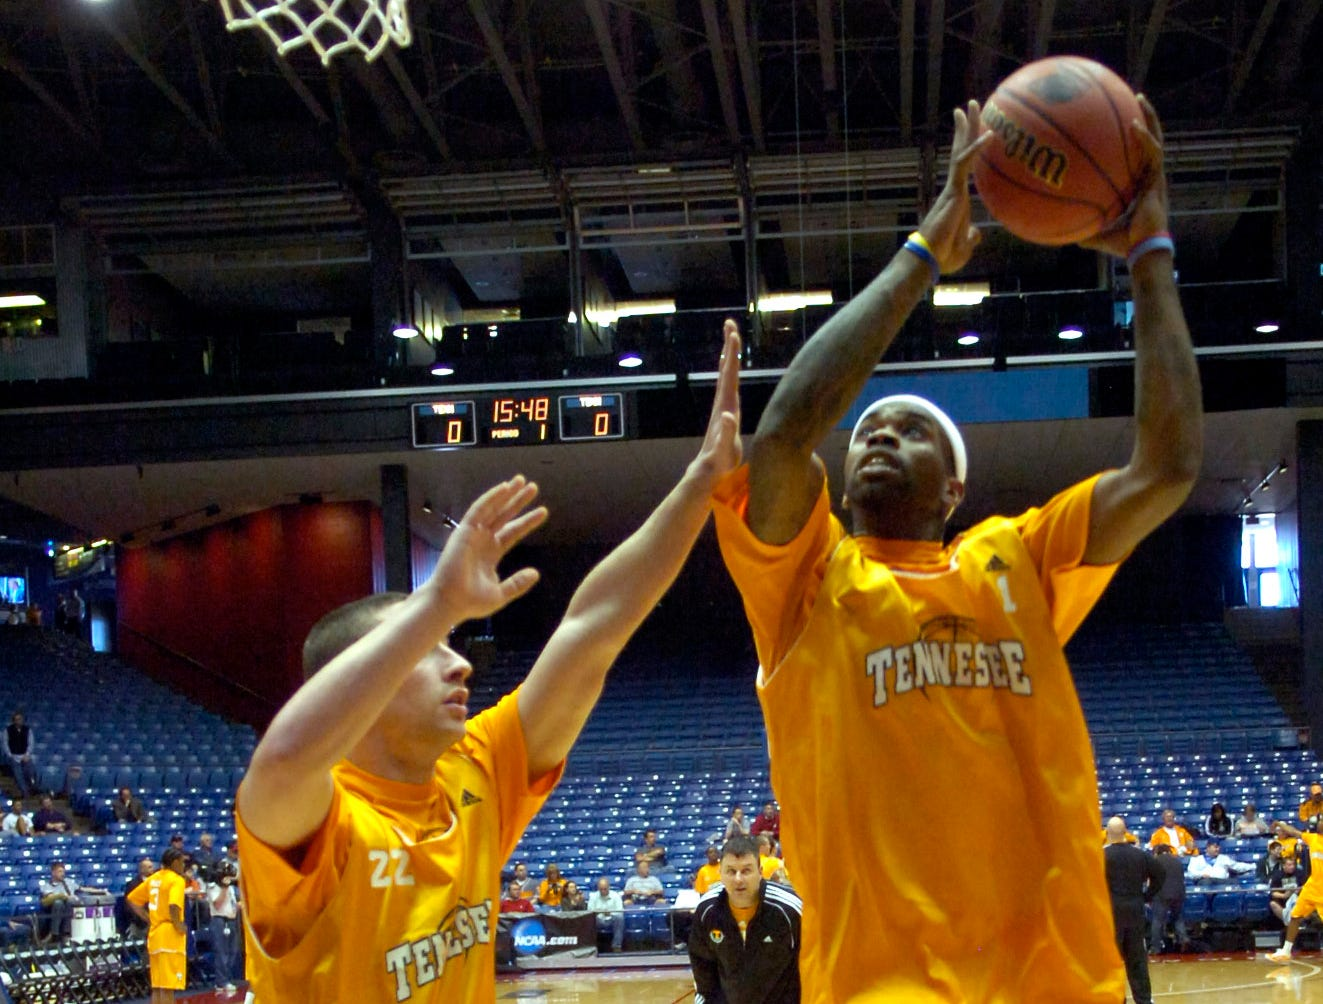 Tennessee's Tyler Smith shoots over teammate Steven Pearl during practice on Thursday at the University of Dayton in Ohio. UT will play Oklahoma State in the first round of the 2009 NCAA tournament at 12:25 p.m. EST on Friday.